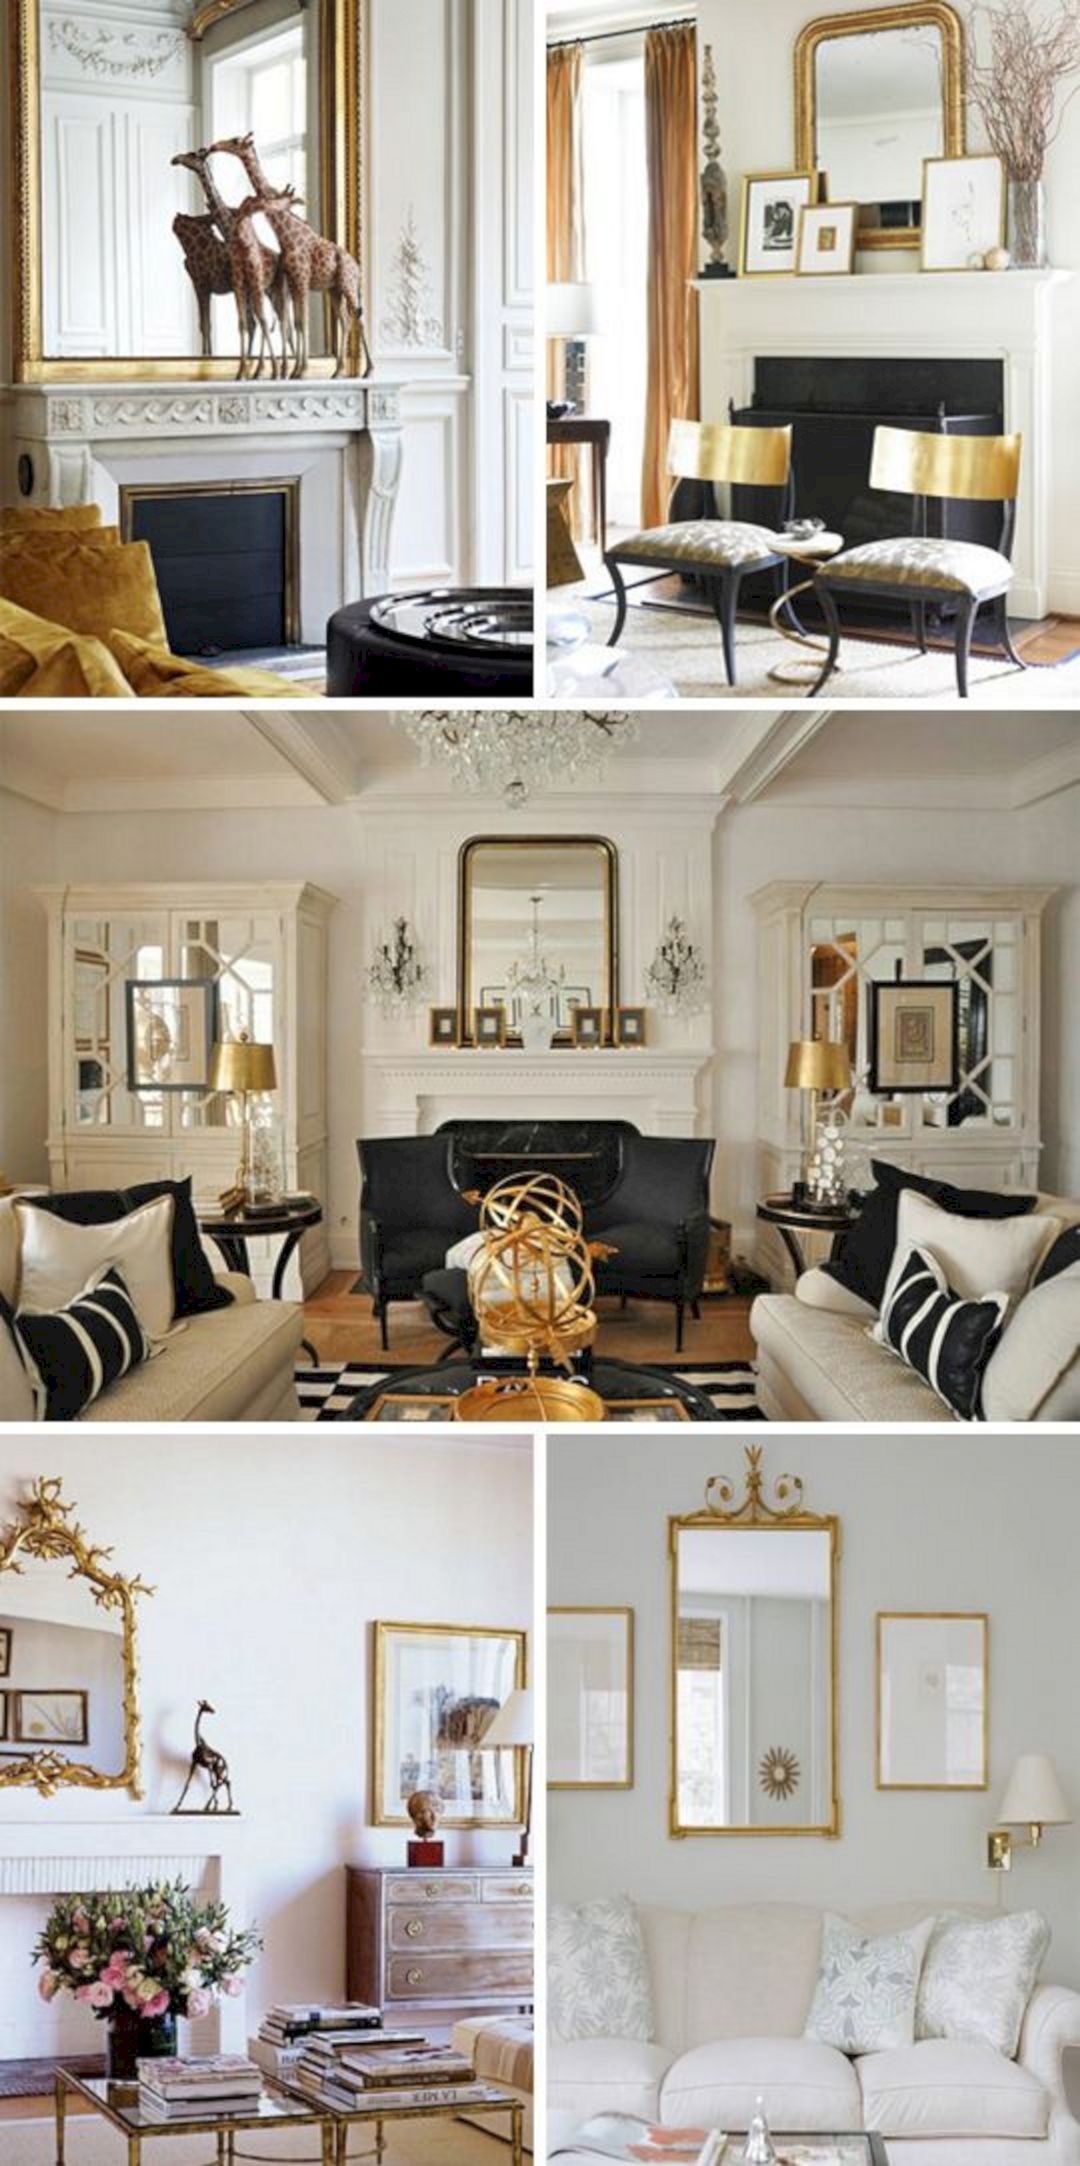 23 Best Beige Living Room Design Ideas For 2019: 23 Best And Wonderful Black White And Gold Living Room